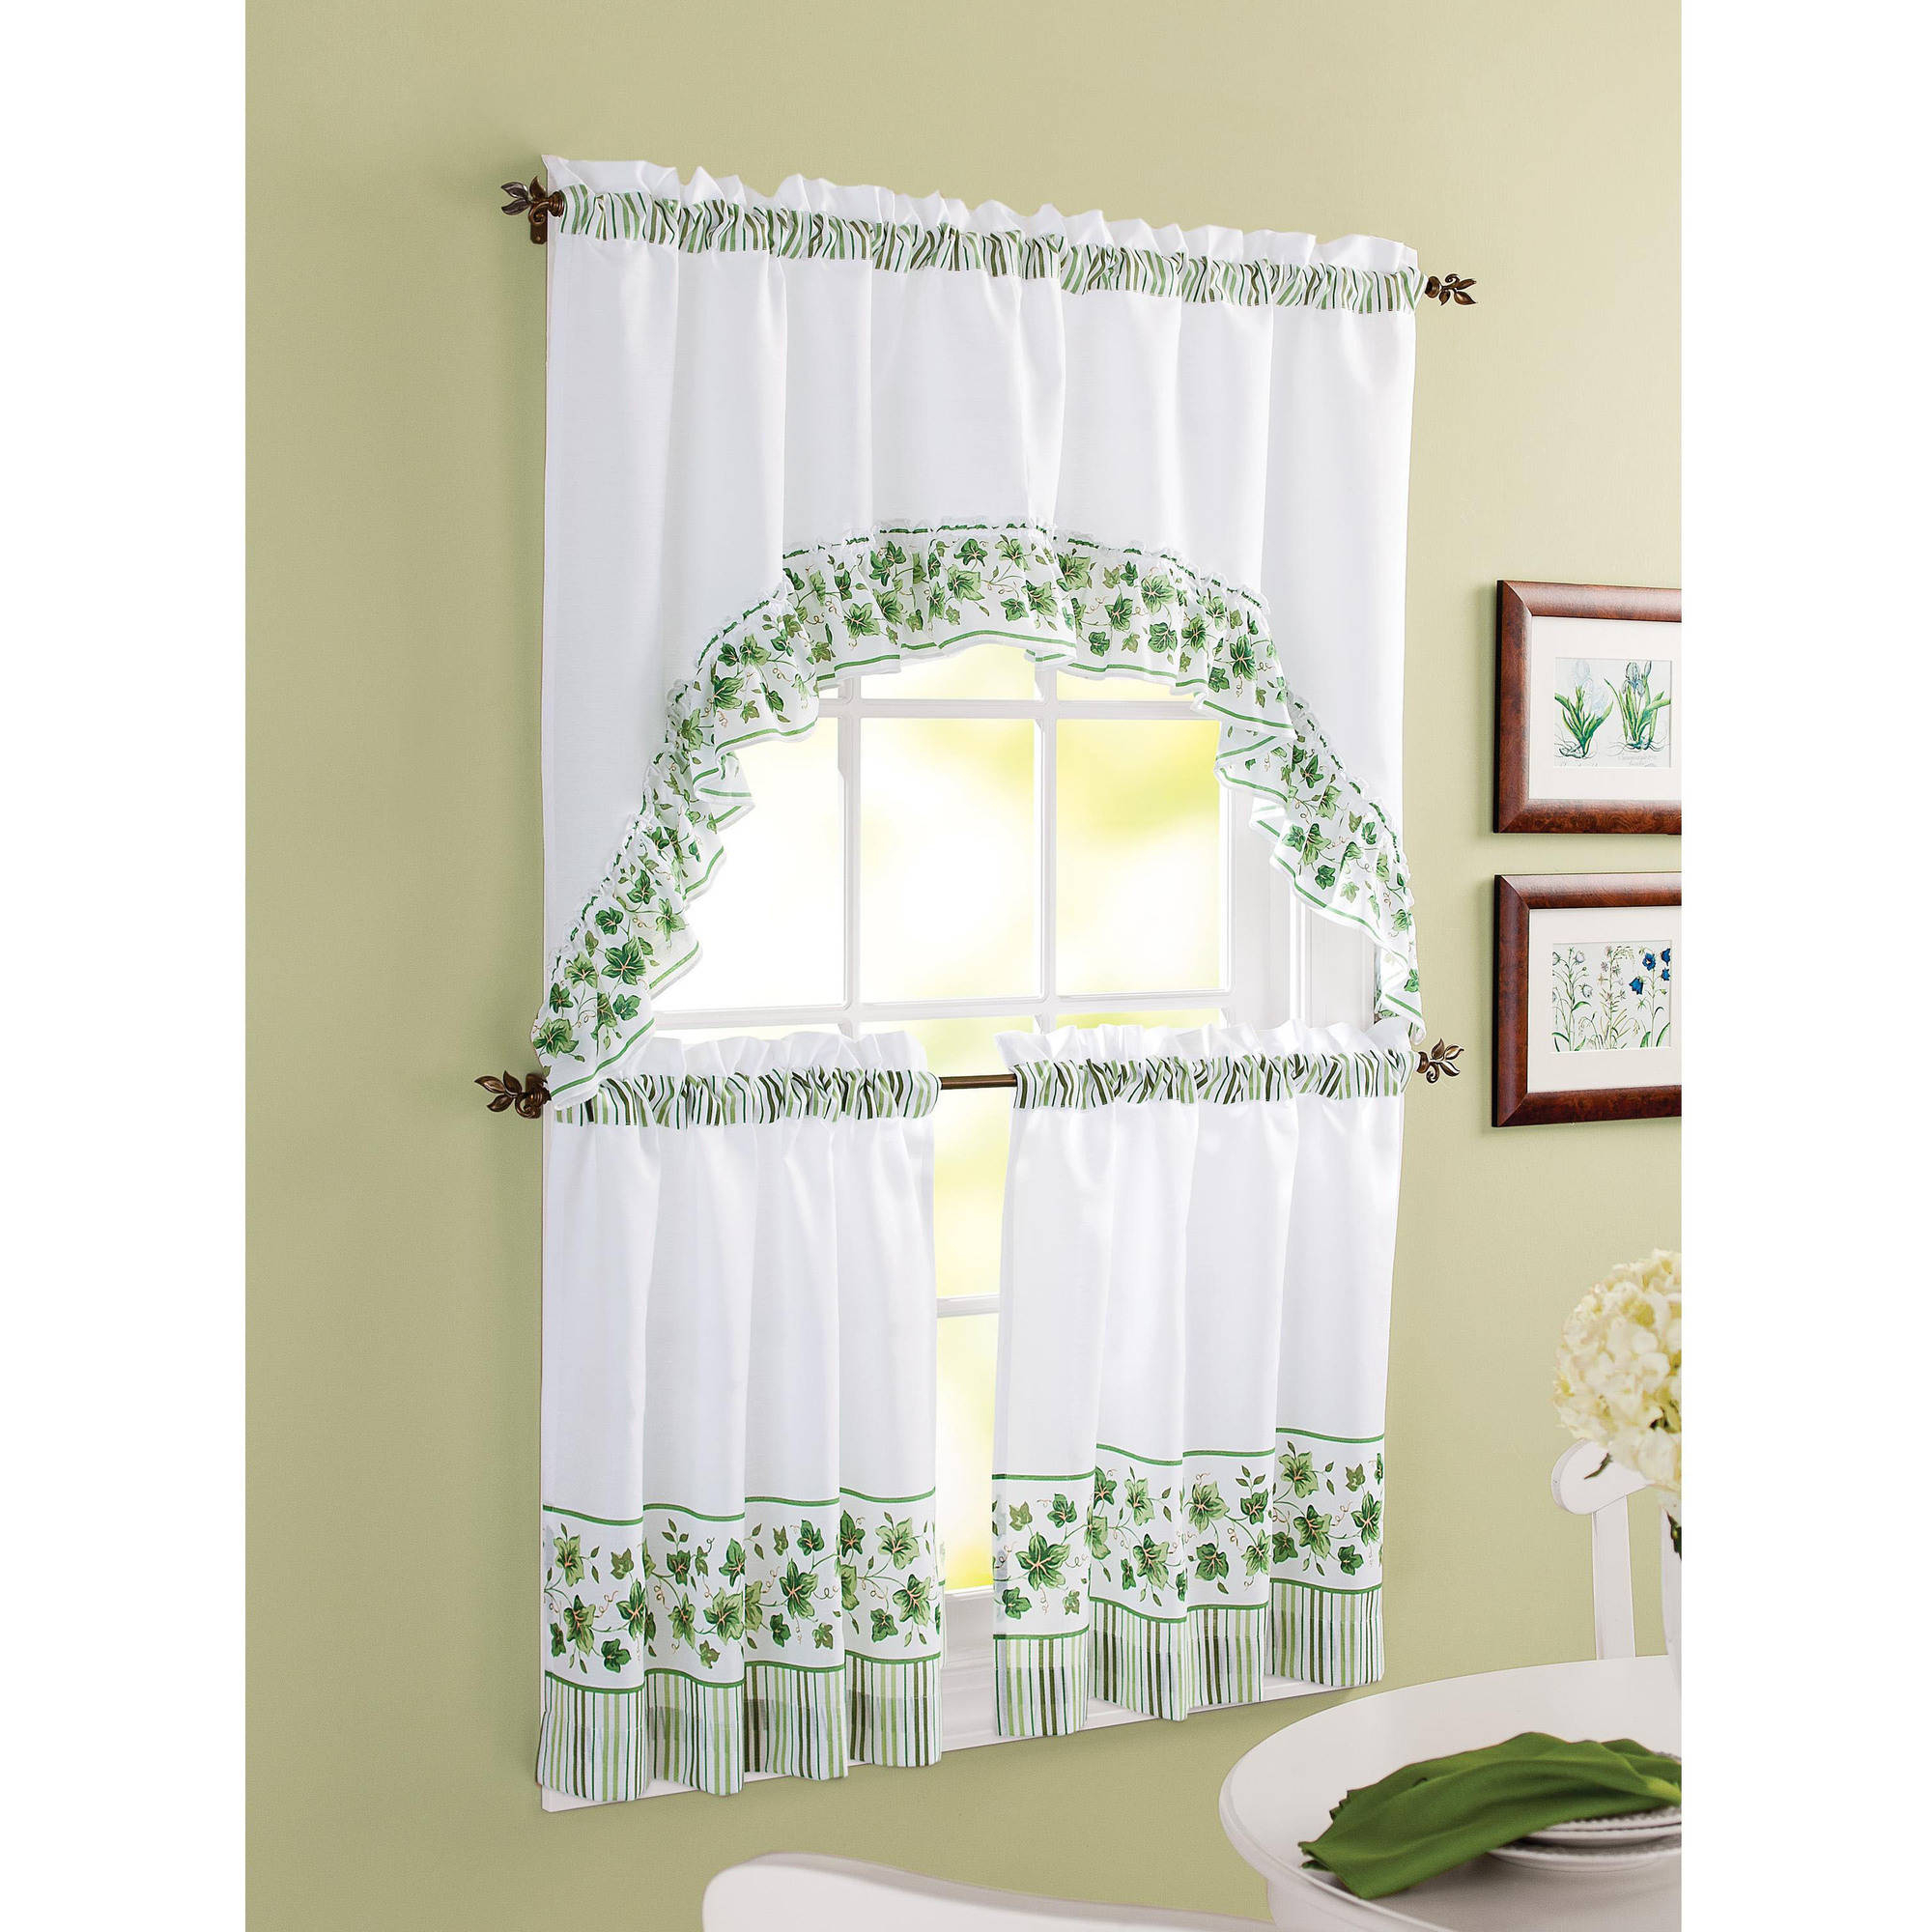 Better Homes & Gardens Ivy Kitchen Curtain Set In Cotton Blend Ivy Floral Tier Curtain And Swag Sets (View 3 of 20)